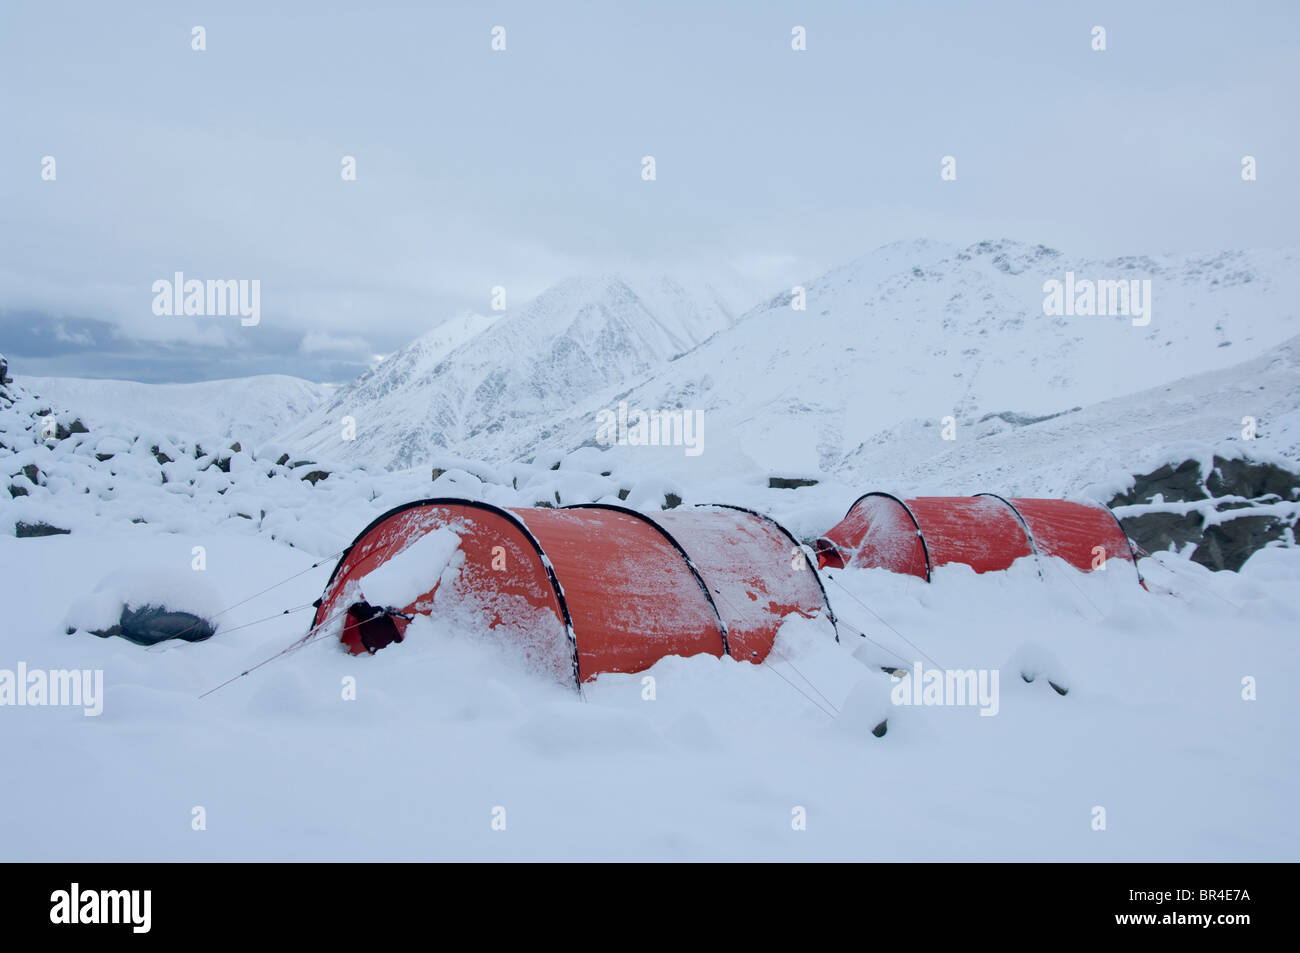 New Zealand South Island Arrowsmith Range. Snowy c&site with Hilleberg tents near Ashburton Glacier & New Zealand South Island Arrowsmith Range. Snowy campsite with ...